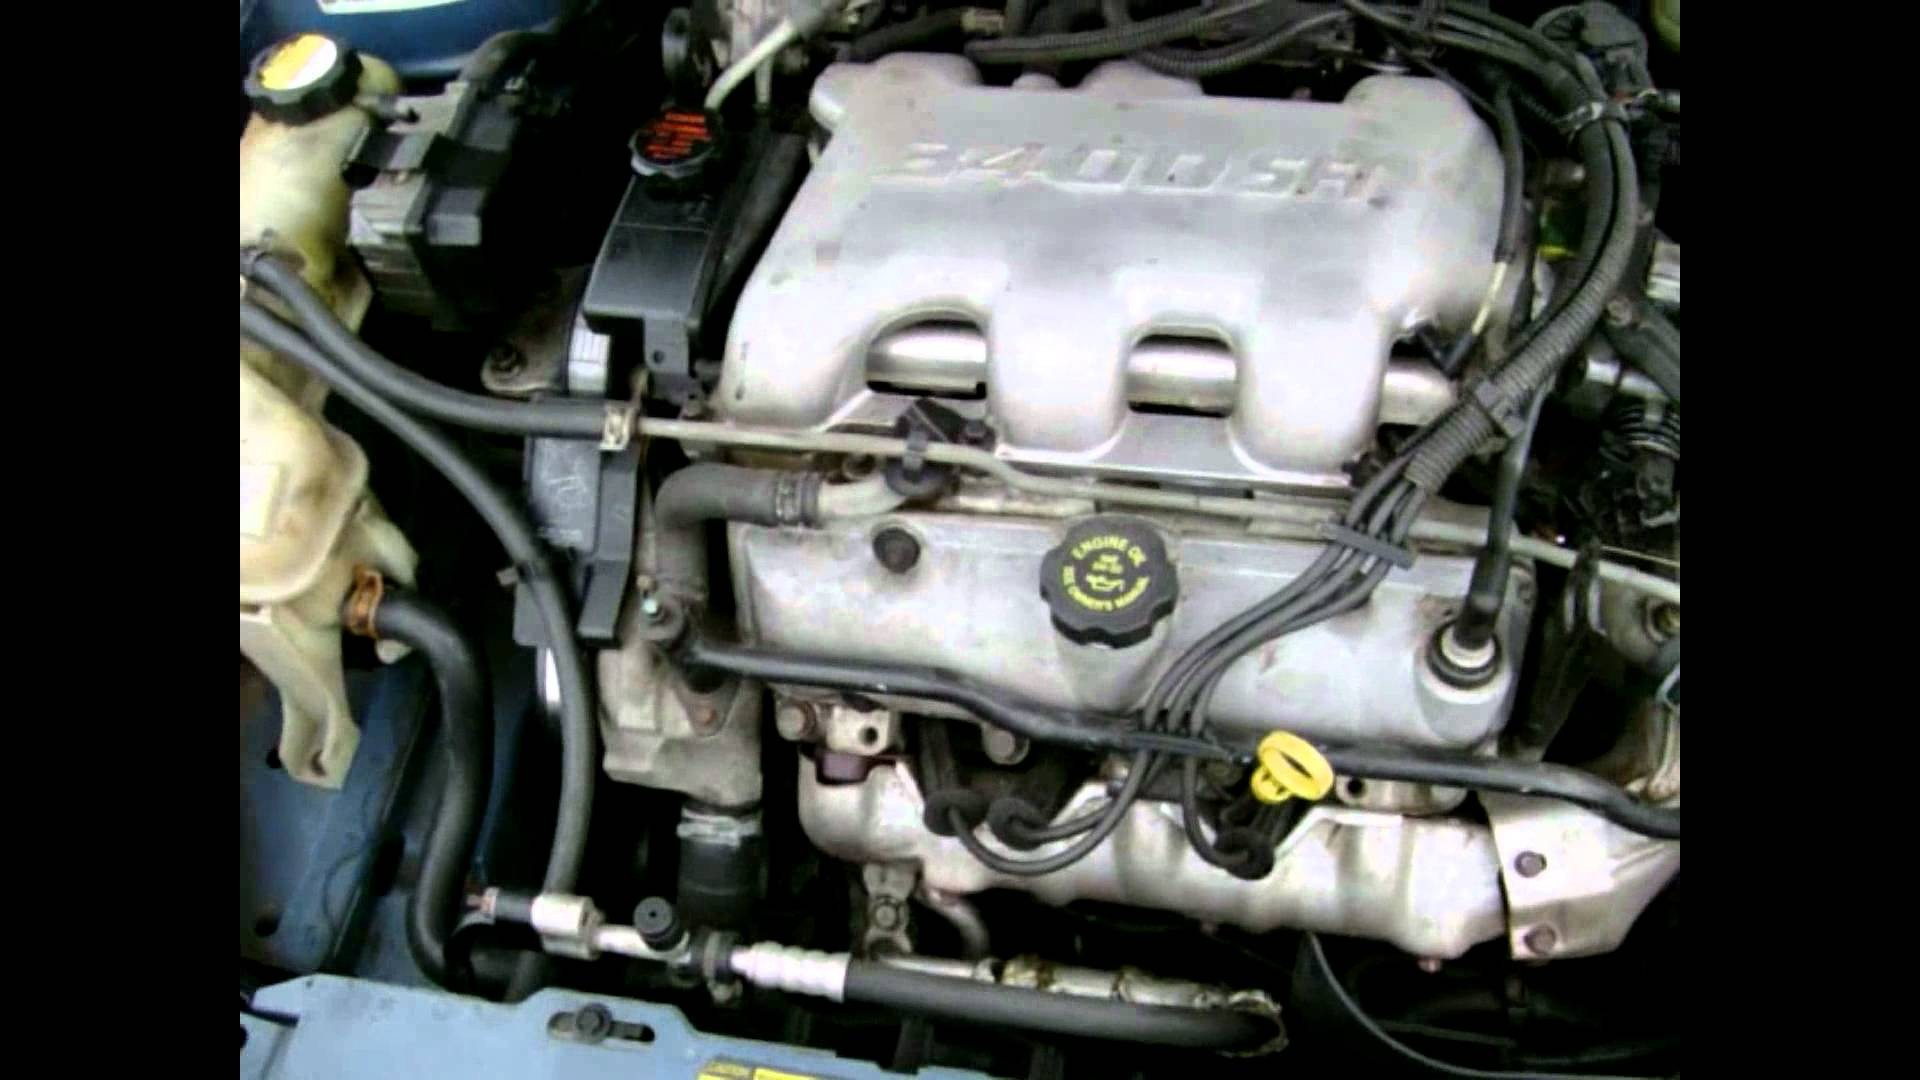 3100 sfi v6 engine diagram 3400 gm engine 3 4 liter motor rh detoxicrecenze com 4.3L Vortec Engine Diagram GMC 4.2L Vortec Engine Diagram